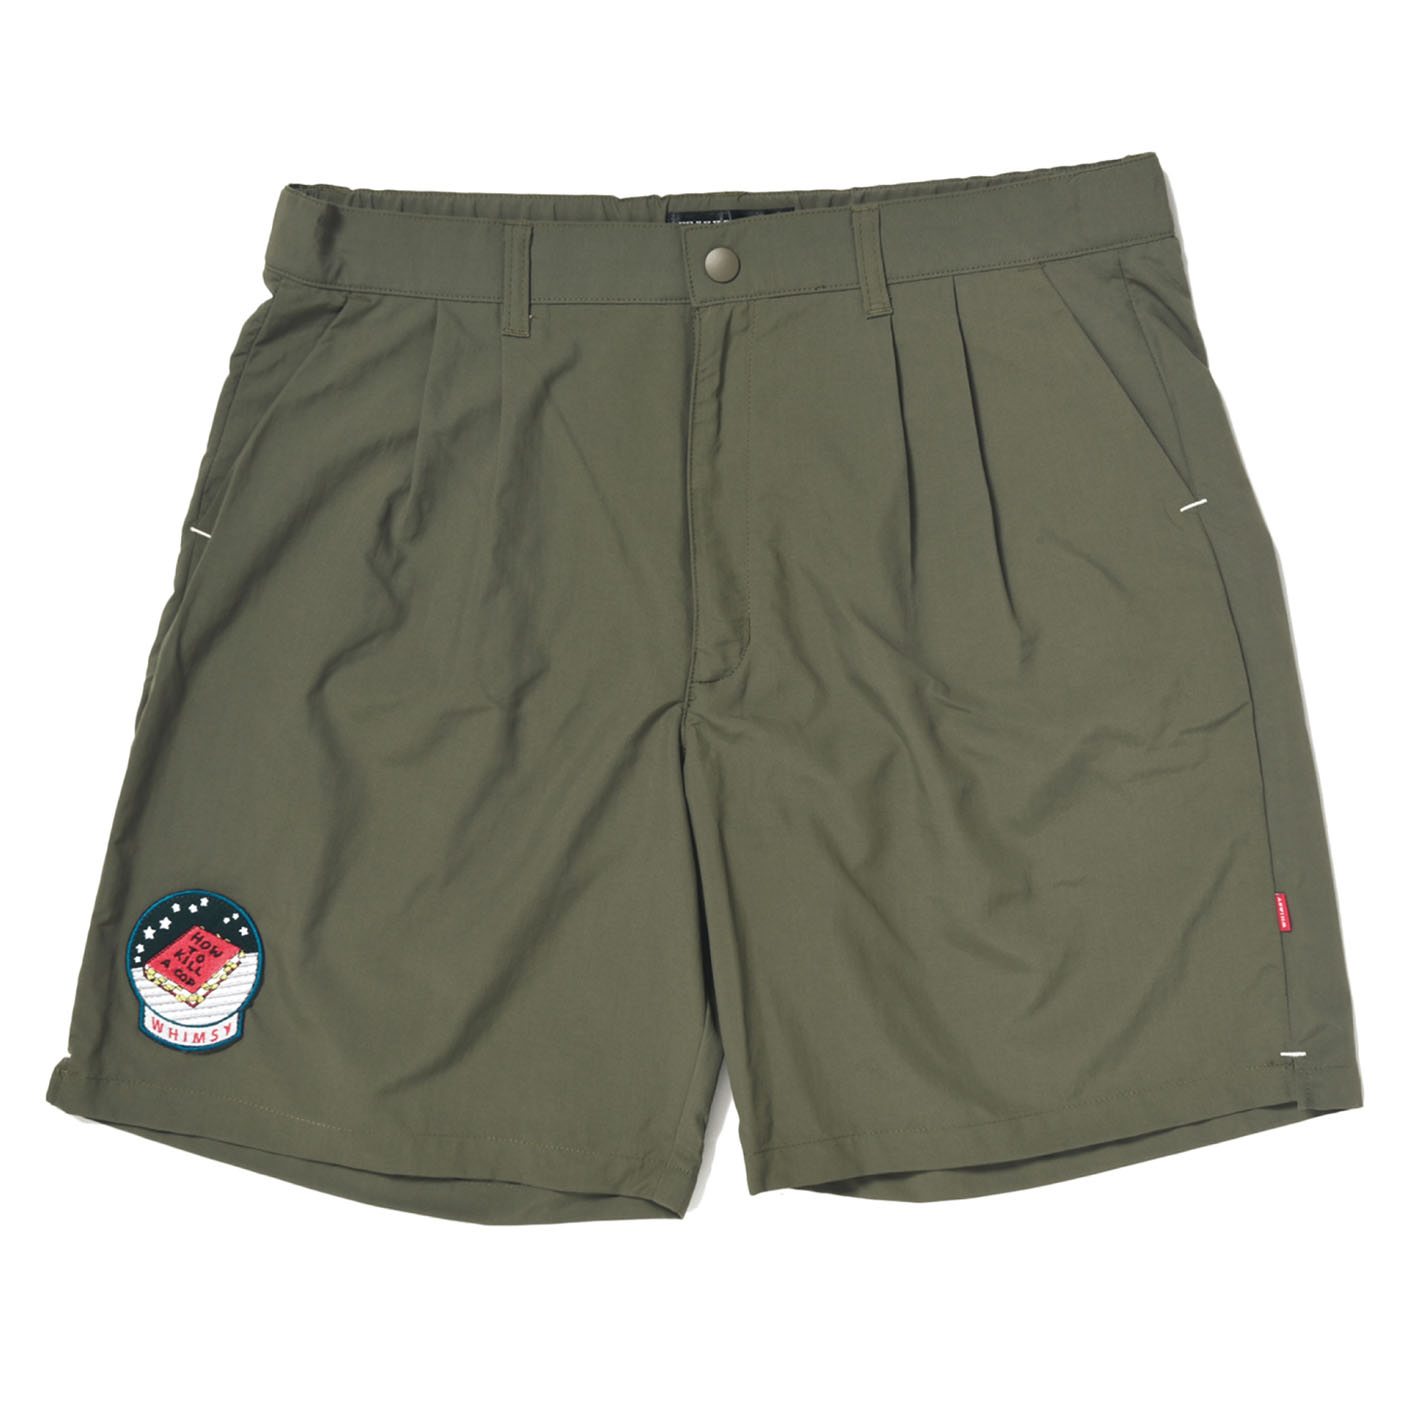 NYLON RIPSTOP BOARD SHORT